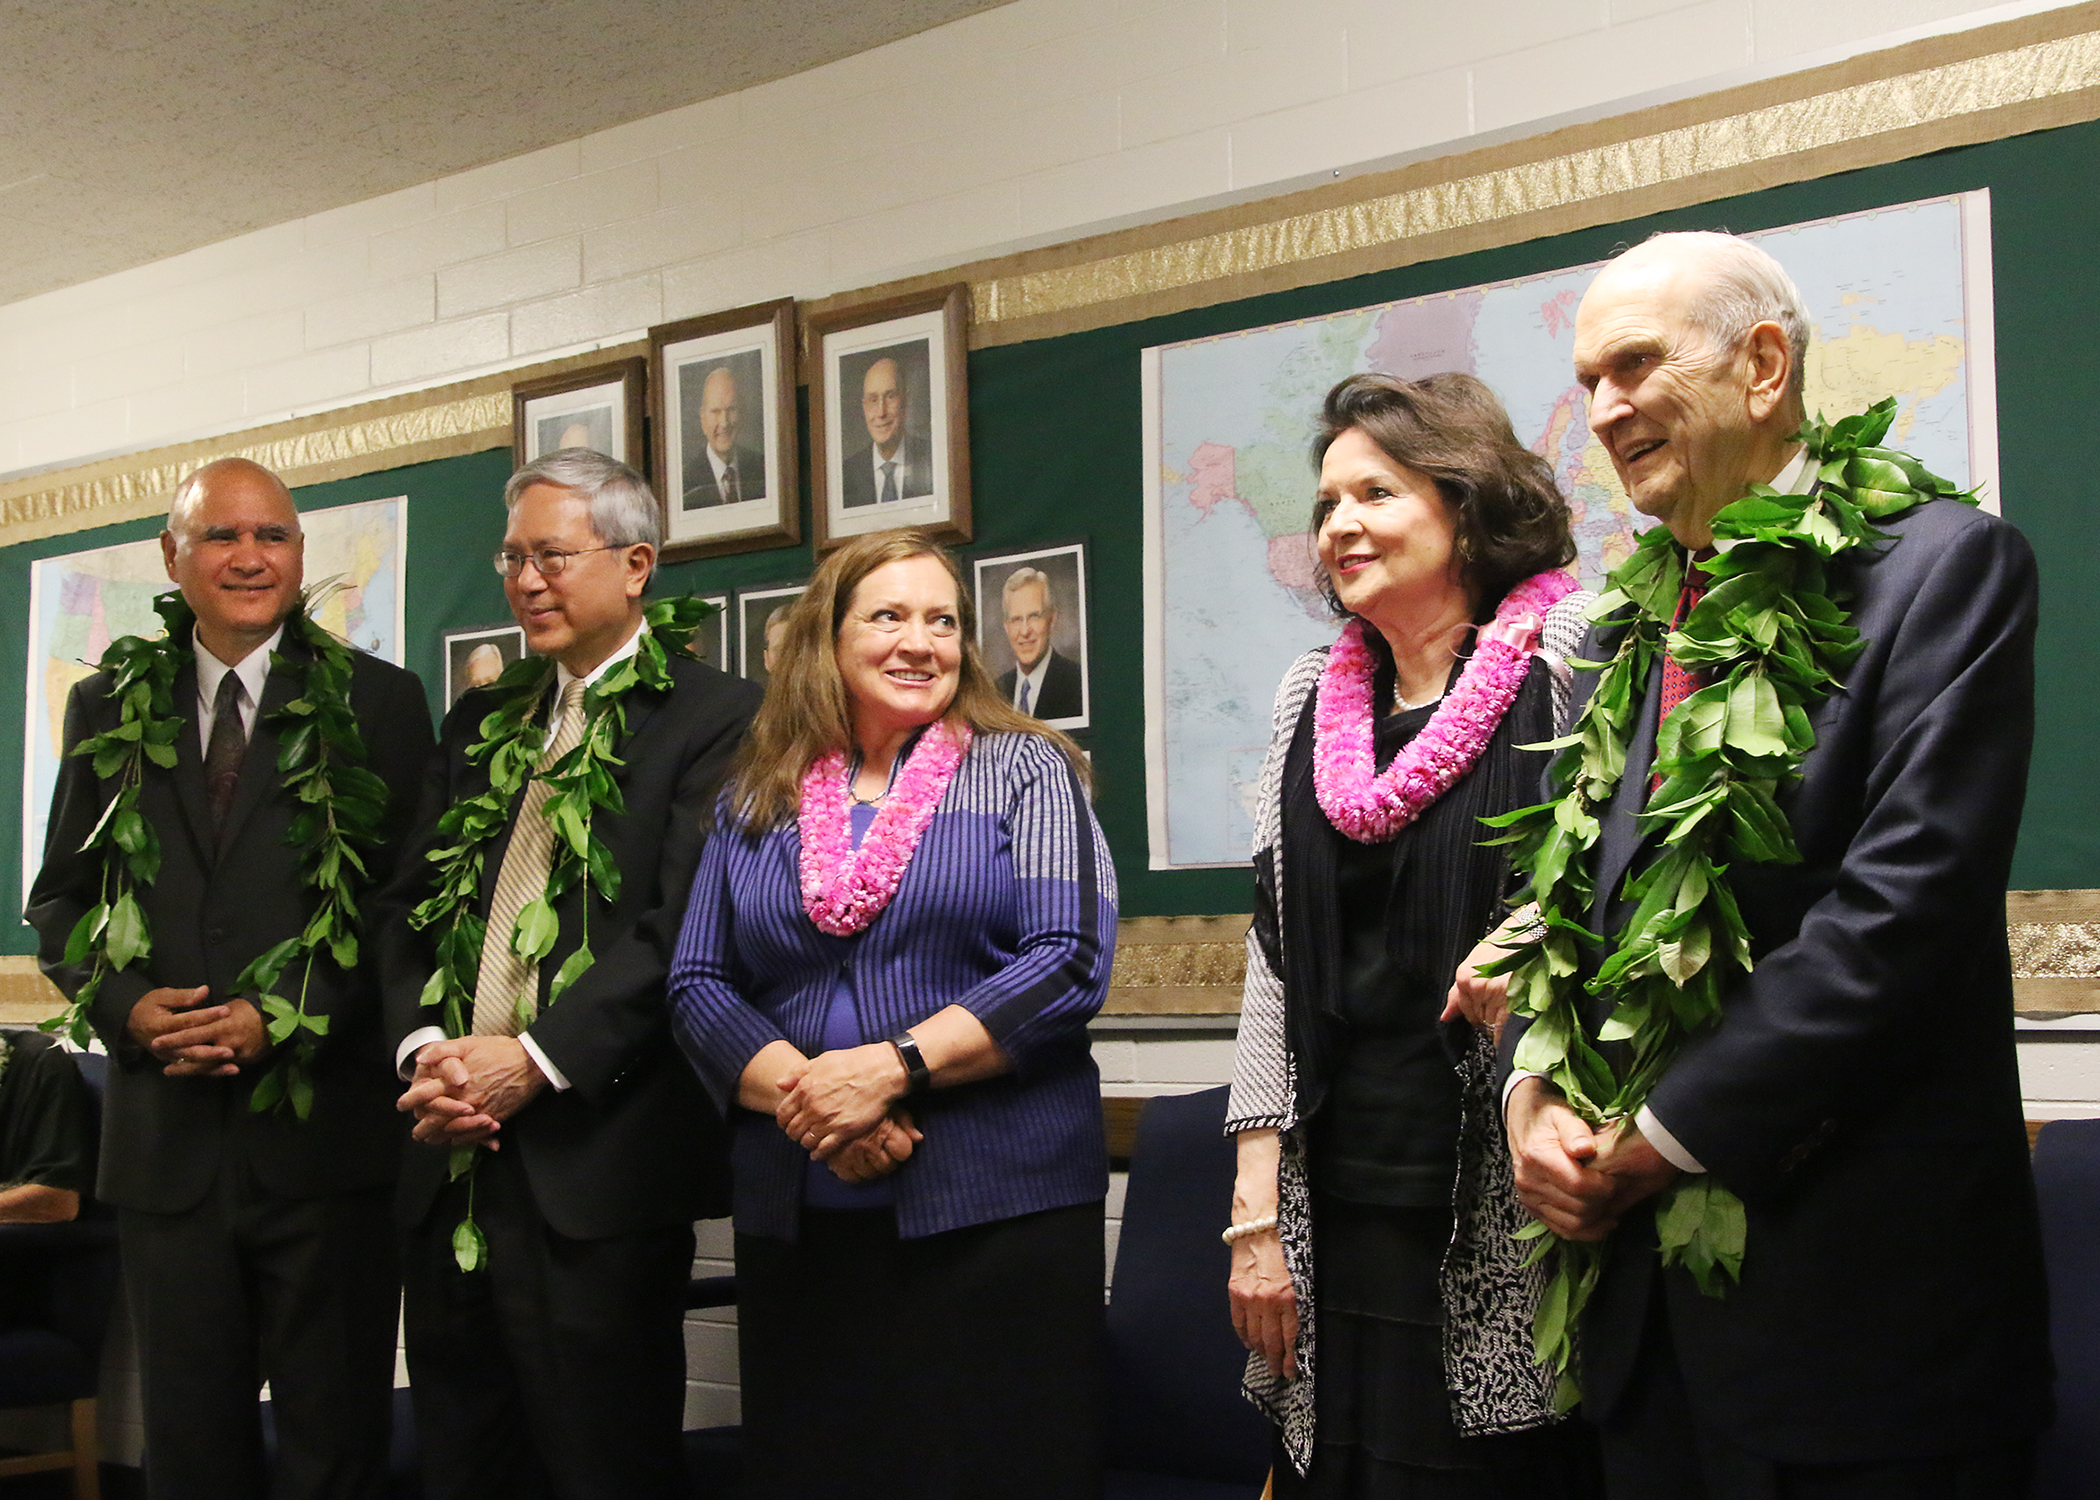 From right to left, President Russell M. Nelson, Sister Wendy Nelson, Sister Susan Gong and Elder Gerrit W. Gong of the Quorum of the Twelve Apostles greet community leaders during a reception prior to the May 16, 2019, devotional in the Kona Hawaii Stake Center. At left is Elder Aley K. Auna Jr., an Area Seventy.